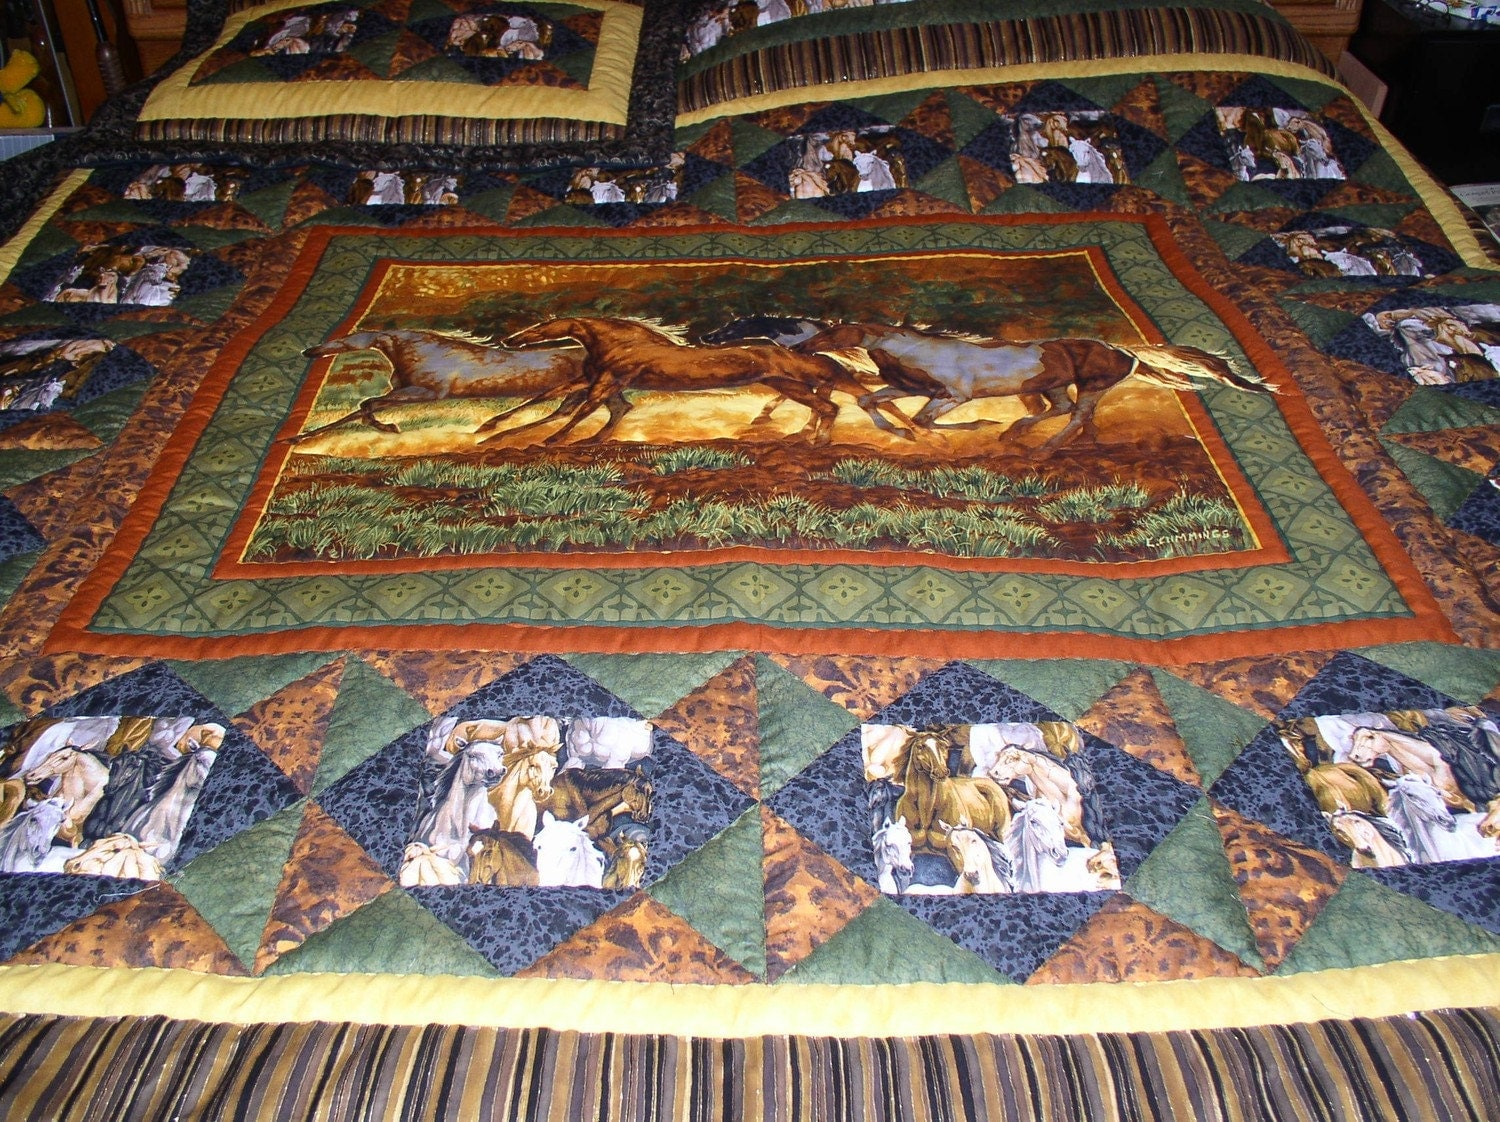 Quilt Patterns With Horses : Western horse quilt western bedding cabin quilt